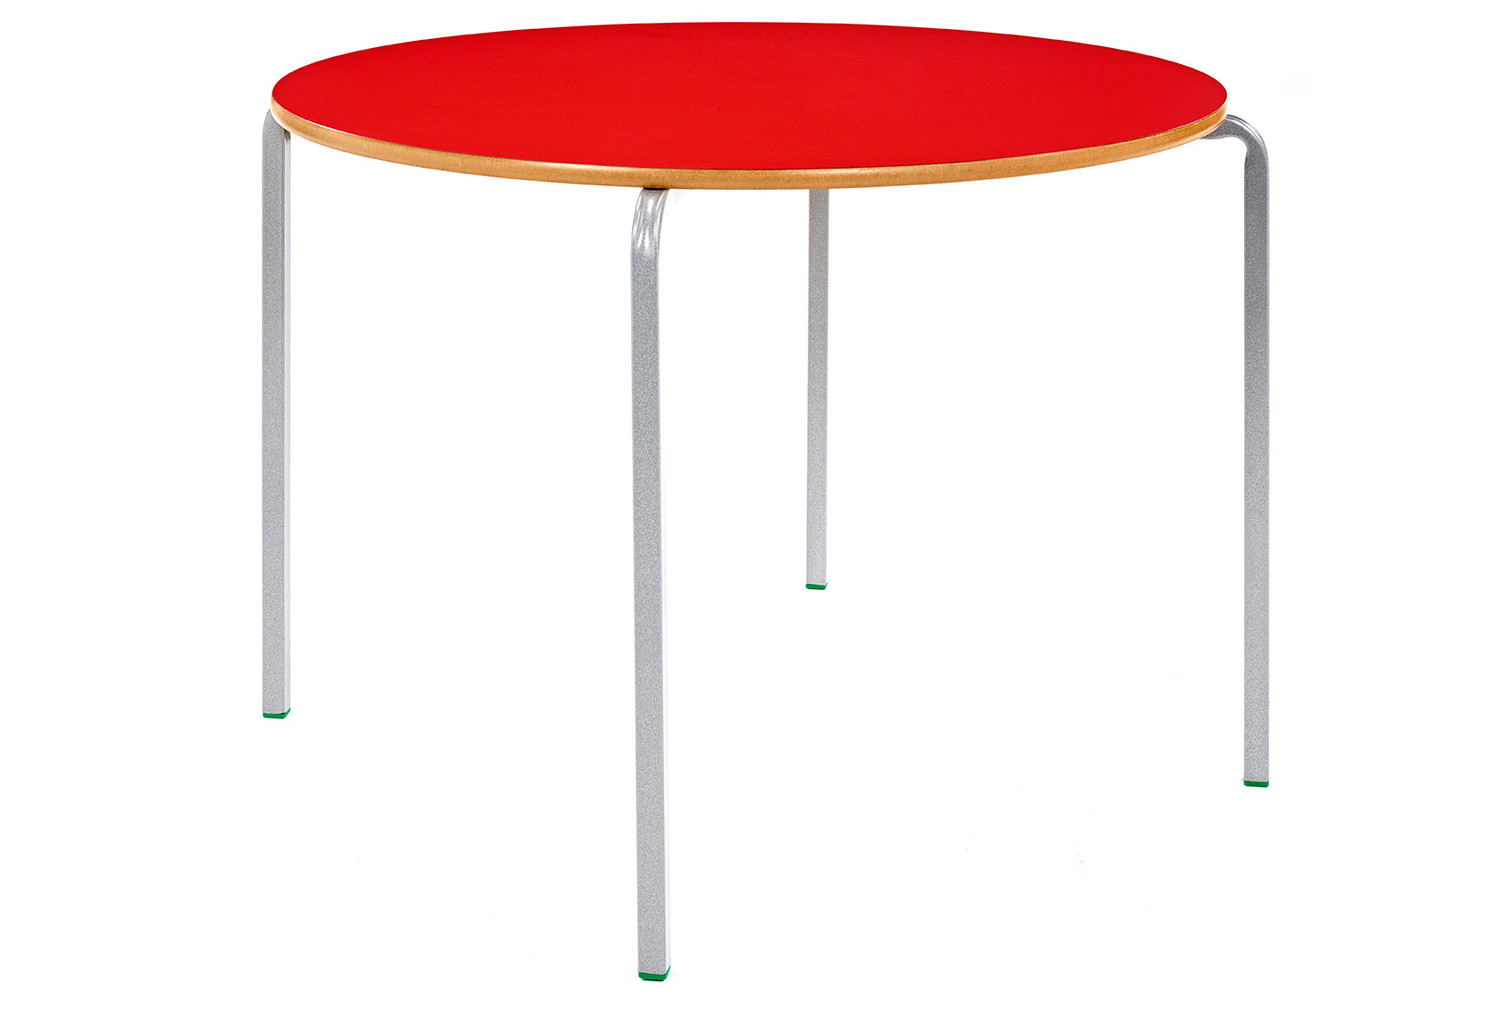 Circular Crush Bent Classroom Tables 8-11 Years